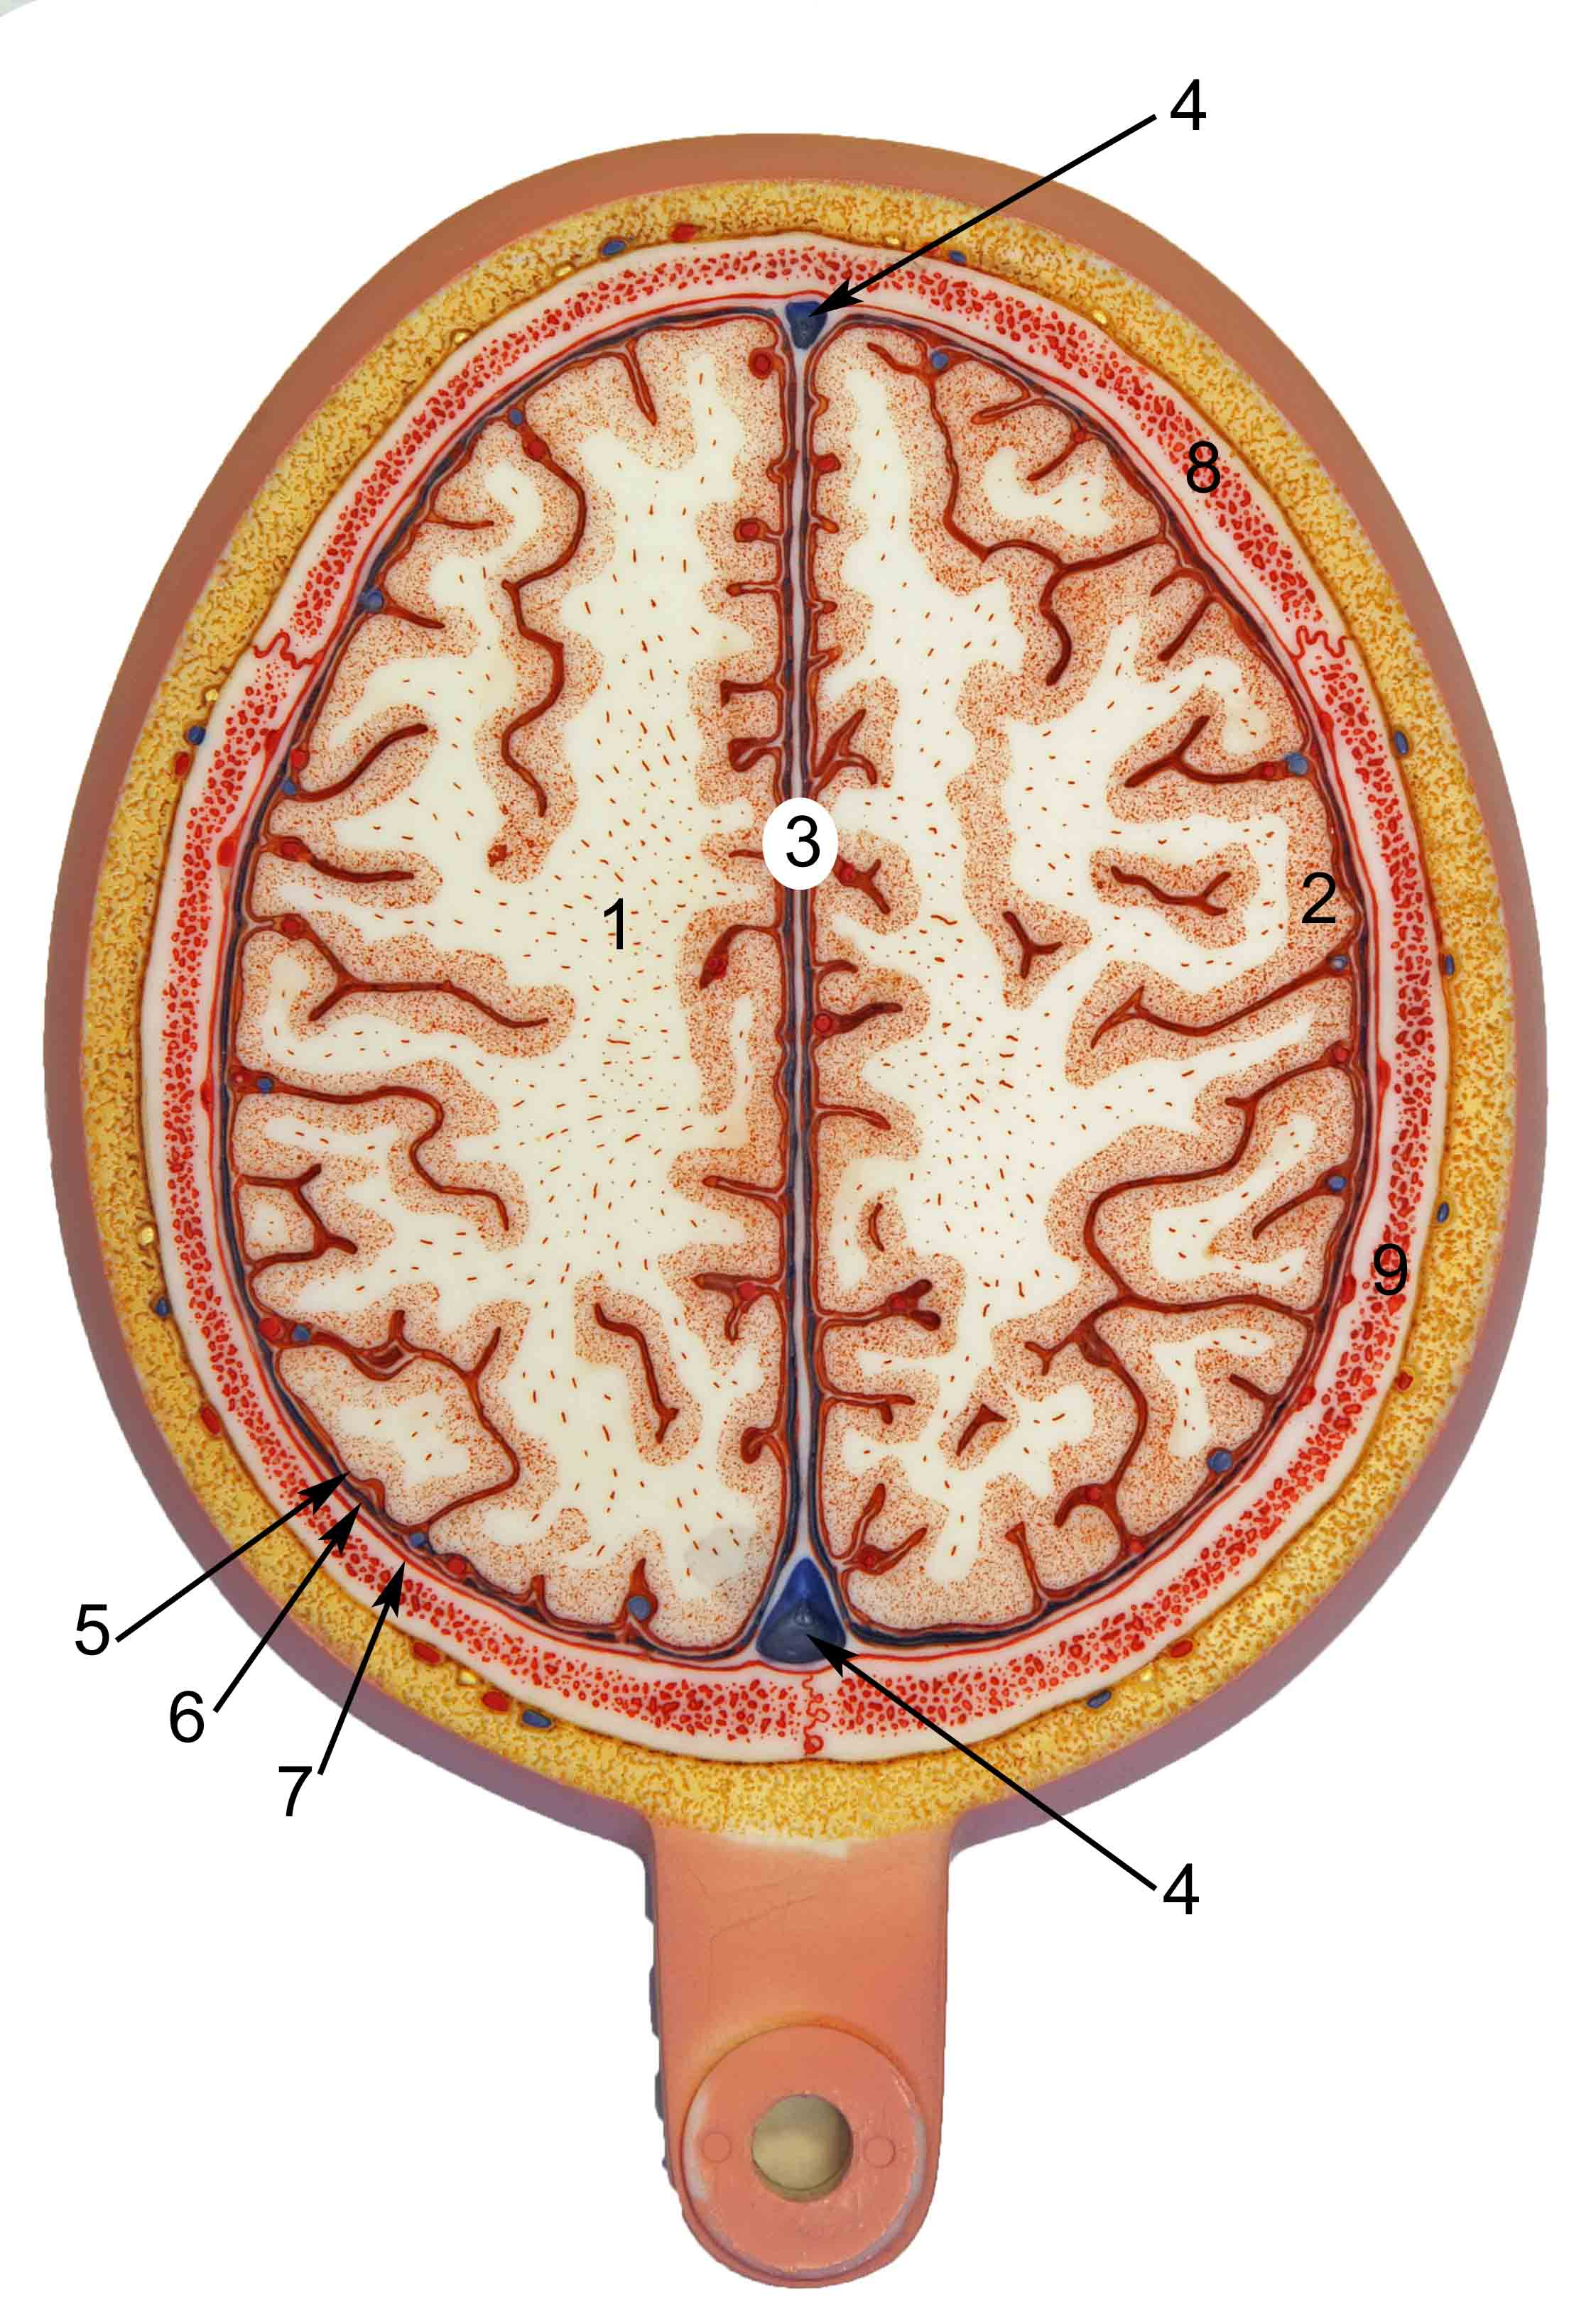 Brain Axial Section